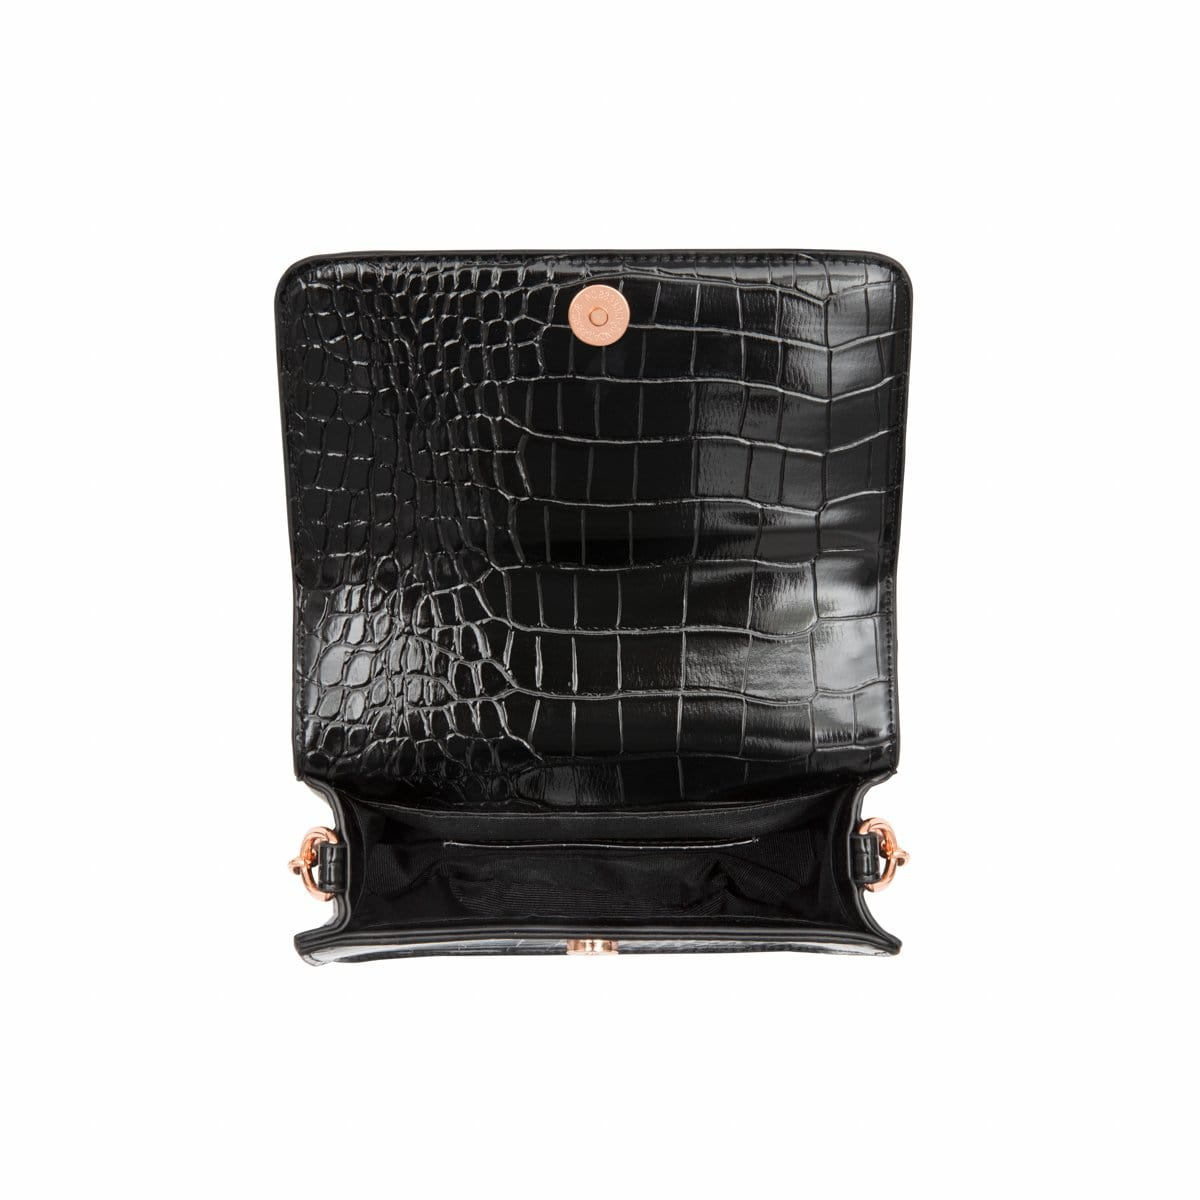 Jet Black Personalise Handbag Rose Gold